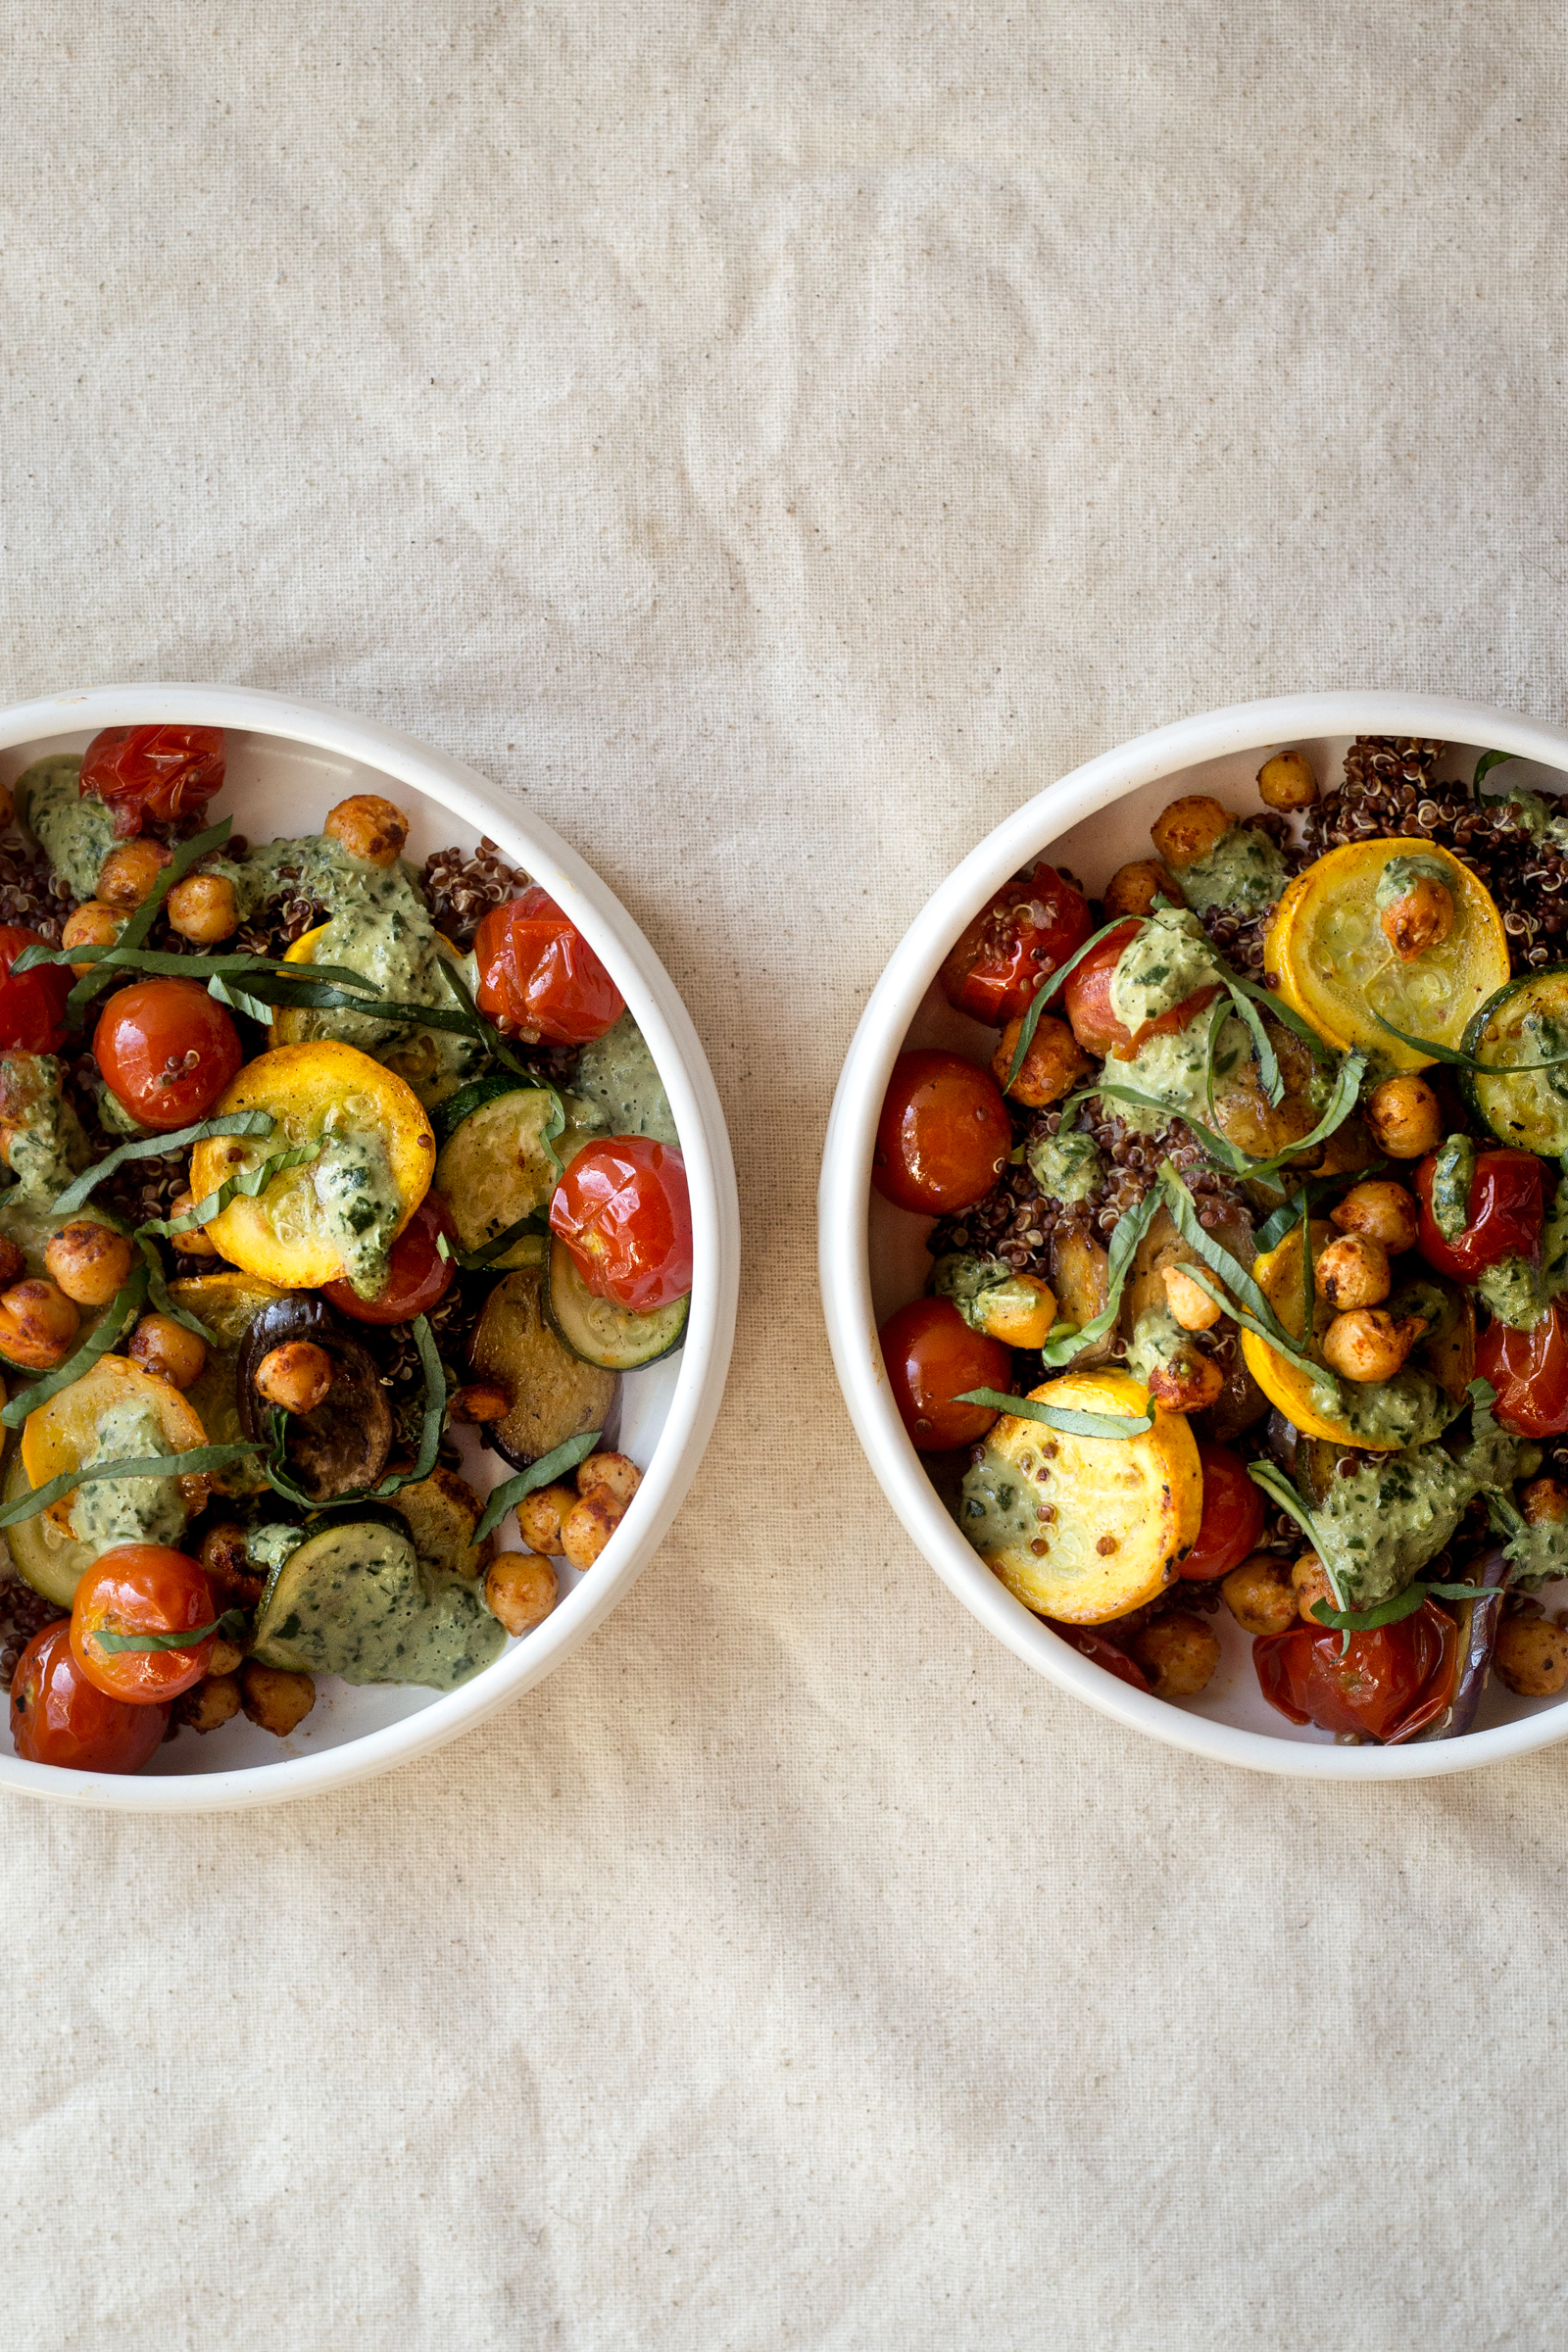 Farm Stand Summer Vegetables Bowls with Herbed Tahini Sauce